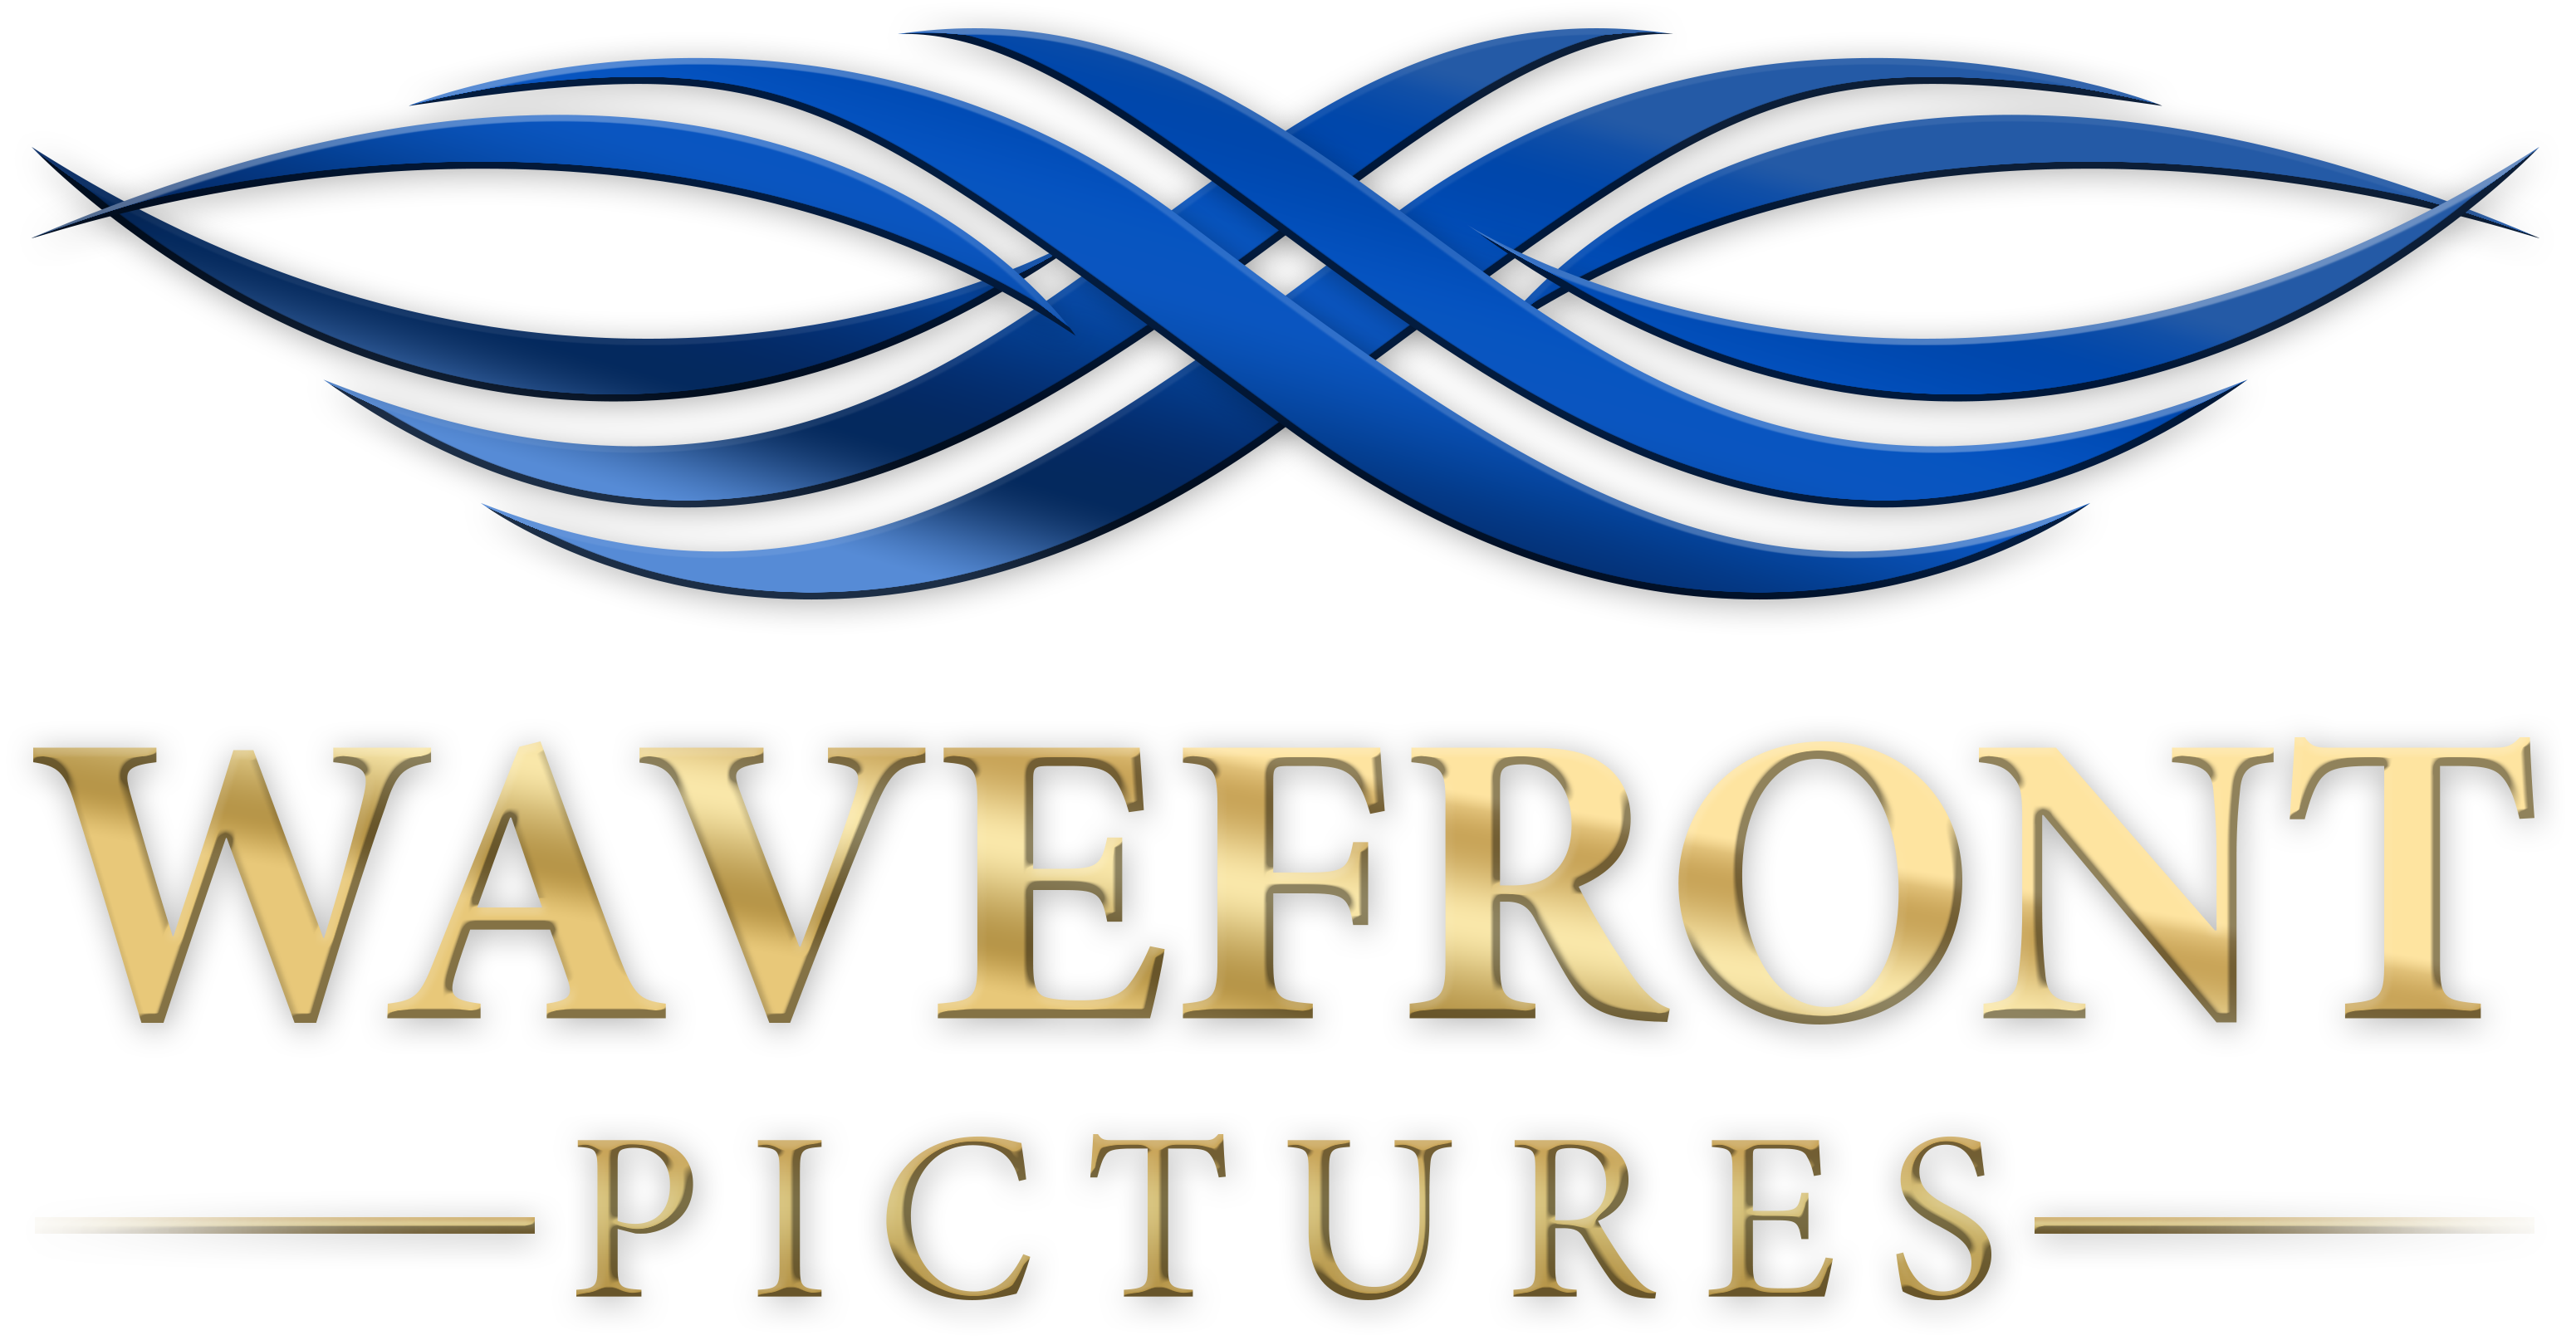 Wavefront Pictures